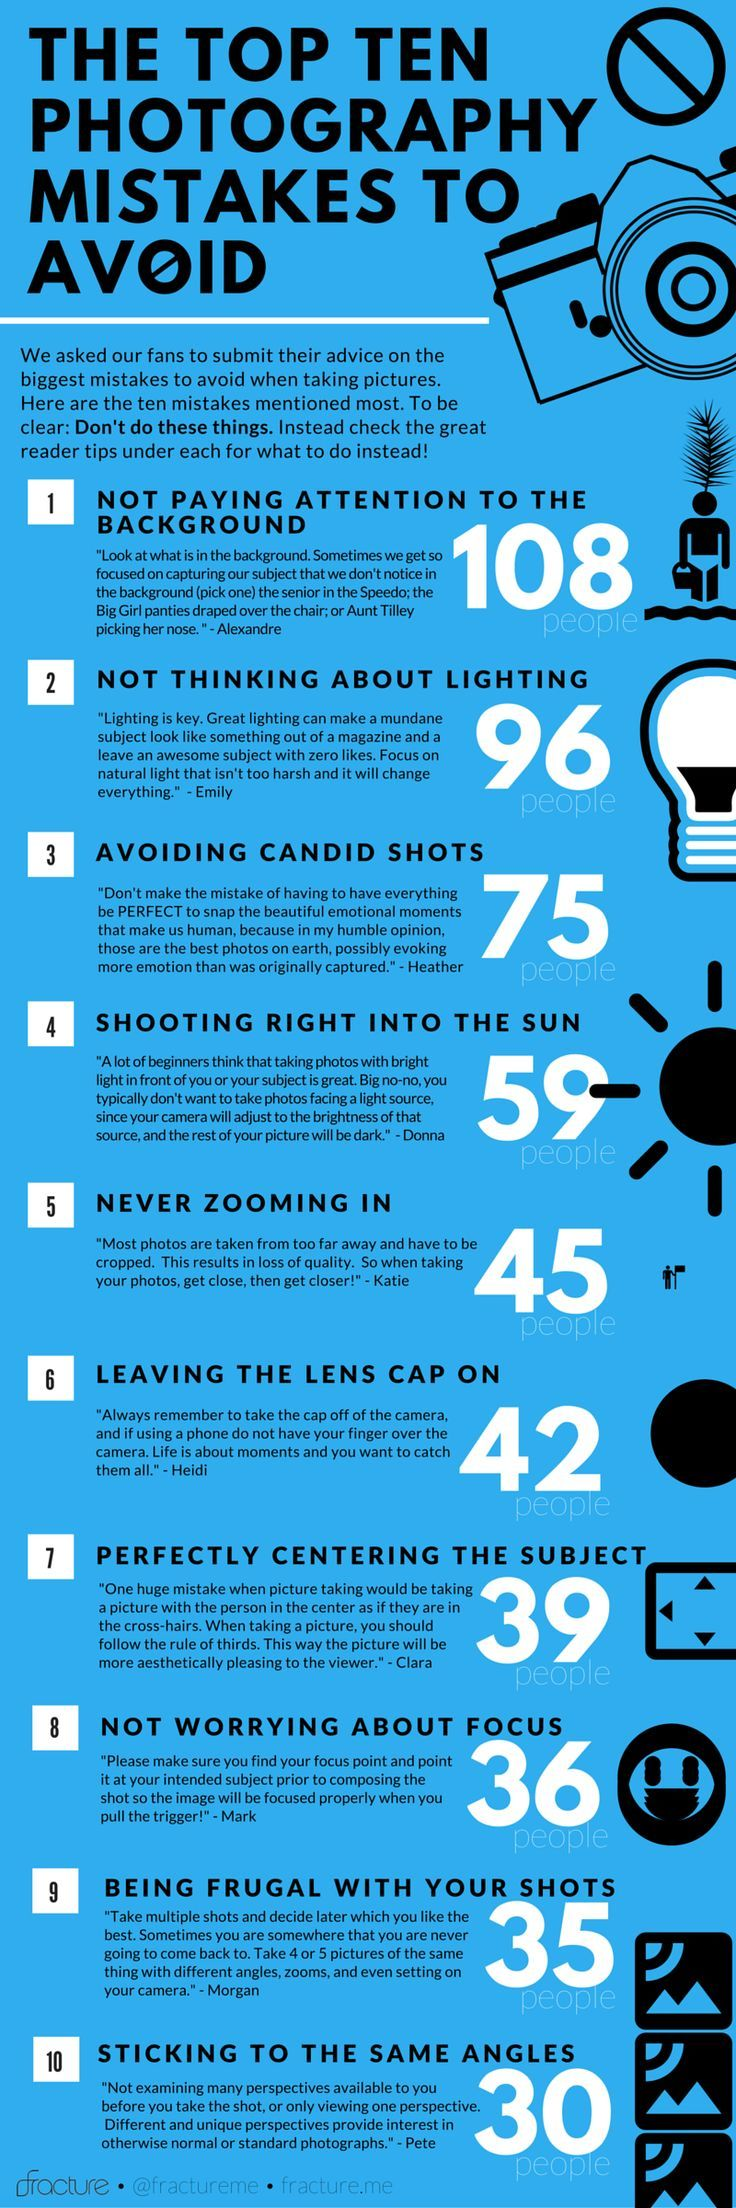 Fracture's Awesome Infographic of Photography Mistakes to Avoid! (Plus 58 more tips on the site!)